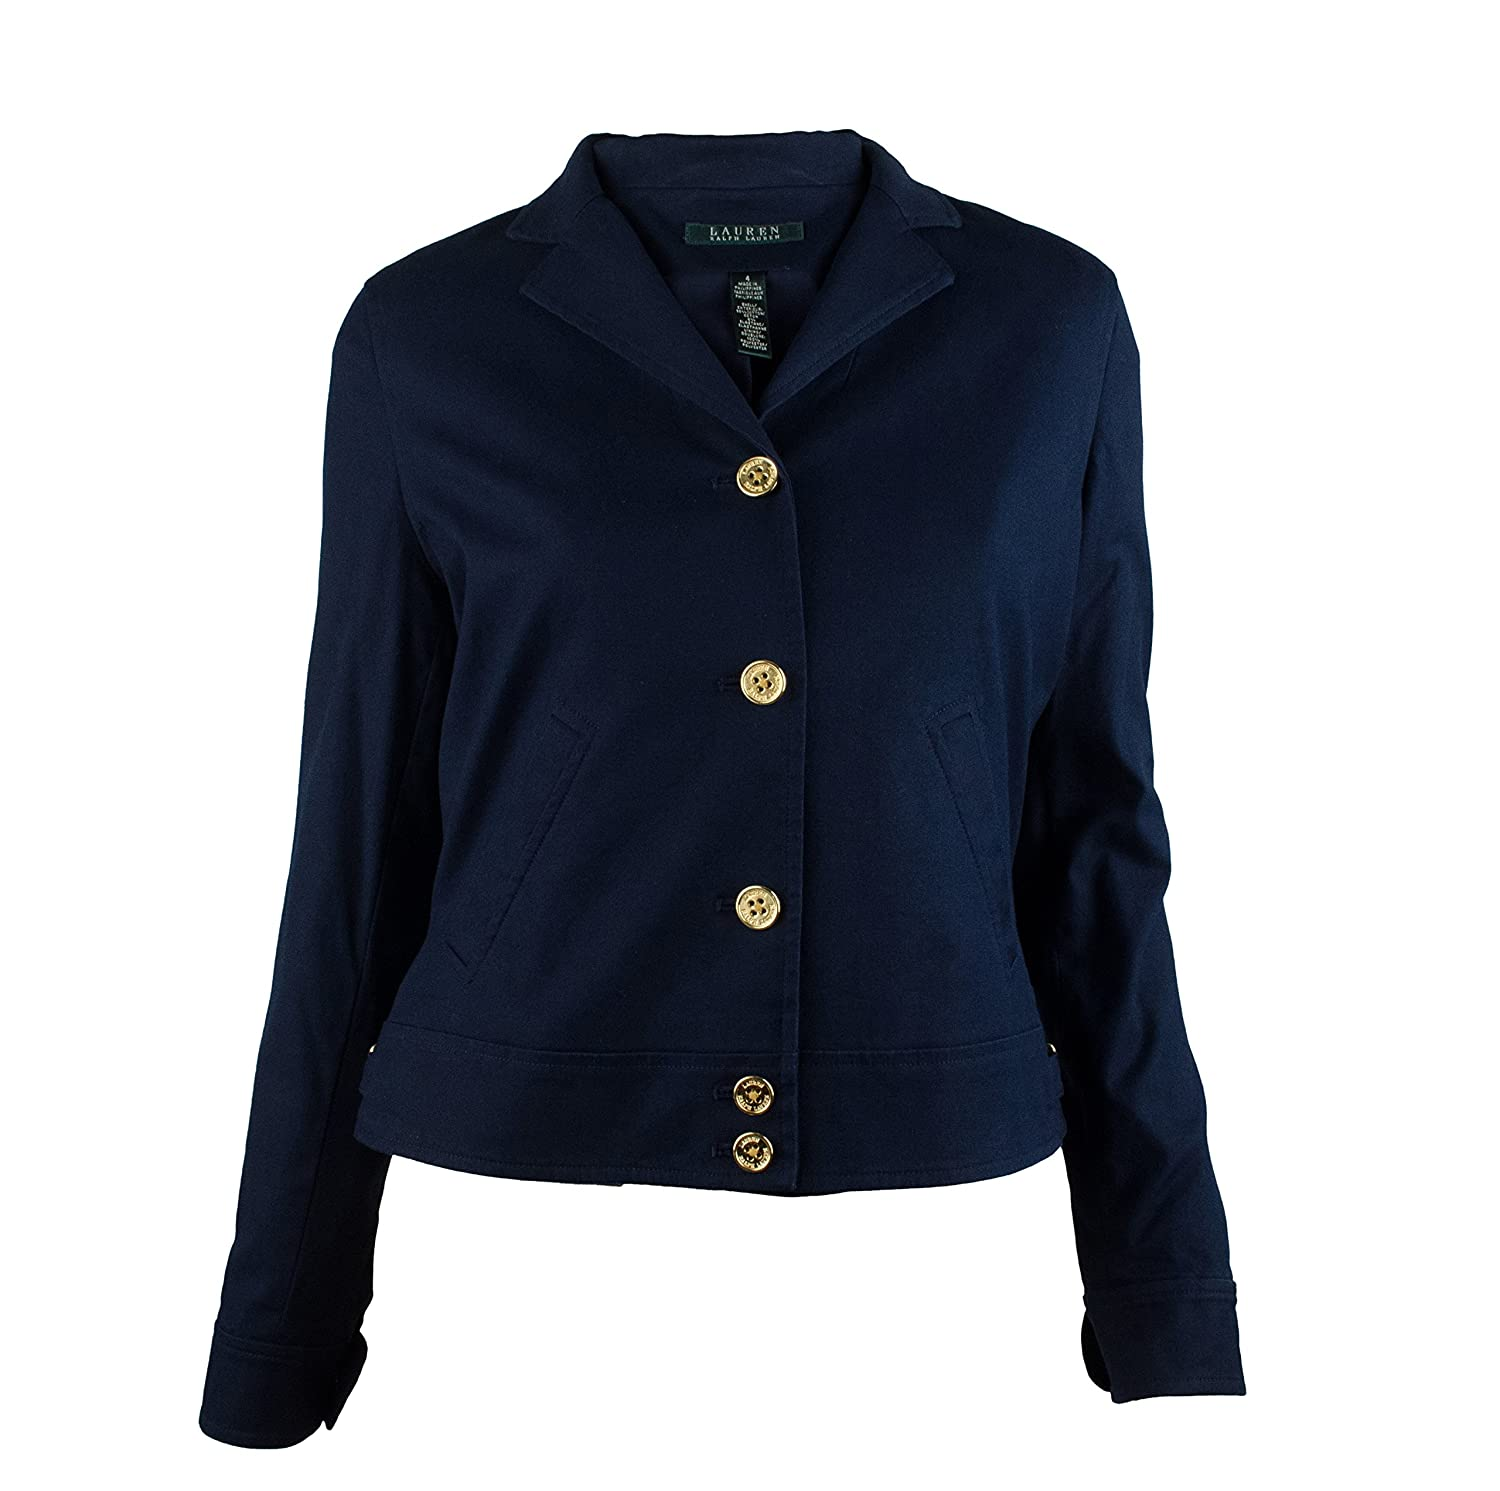 Lauren Ralph Lauren 5-Button Cotton Blazer (Capri Navy) lauren ralph lauren new deep blue navy women s size 8 slim leg relaxed pants $98